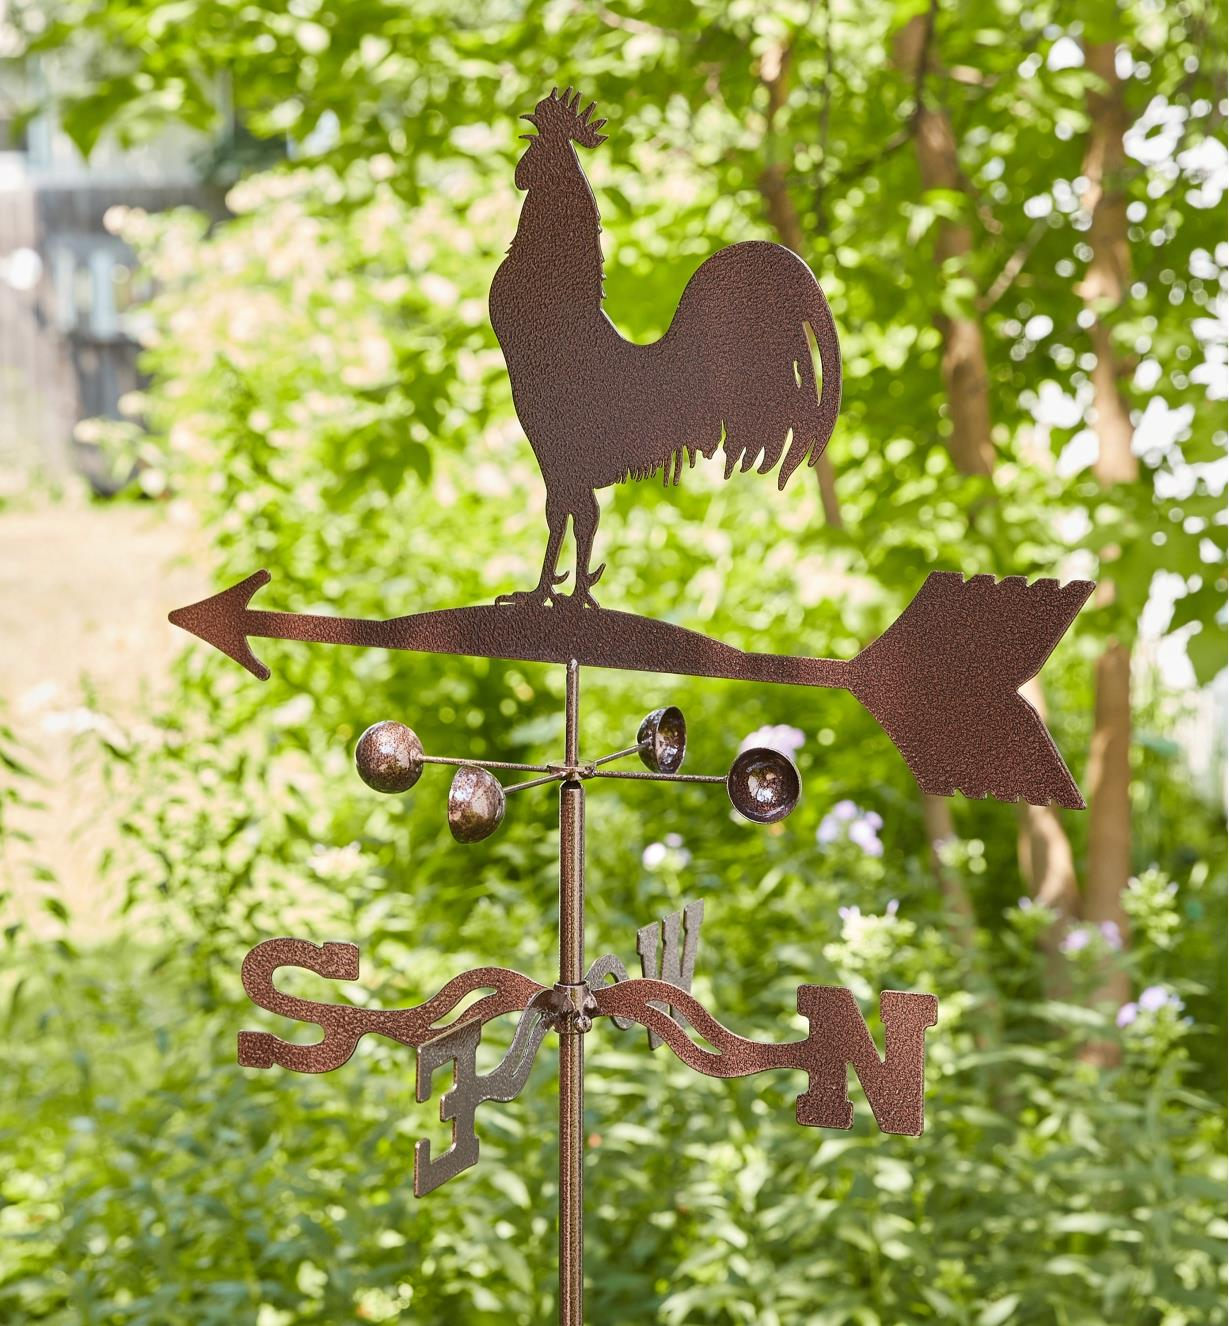 The topper, wind cups and directional of the rooster garden weathervane